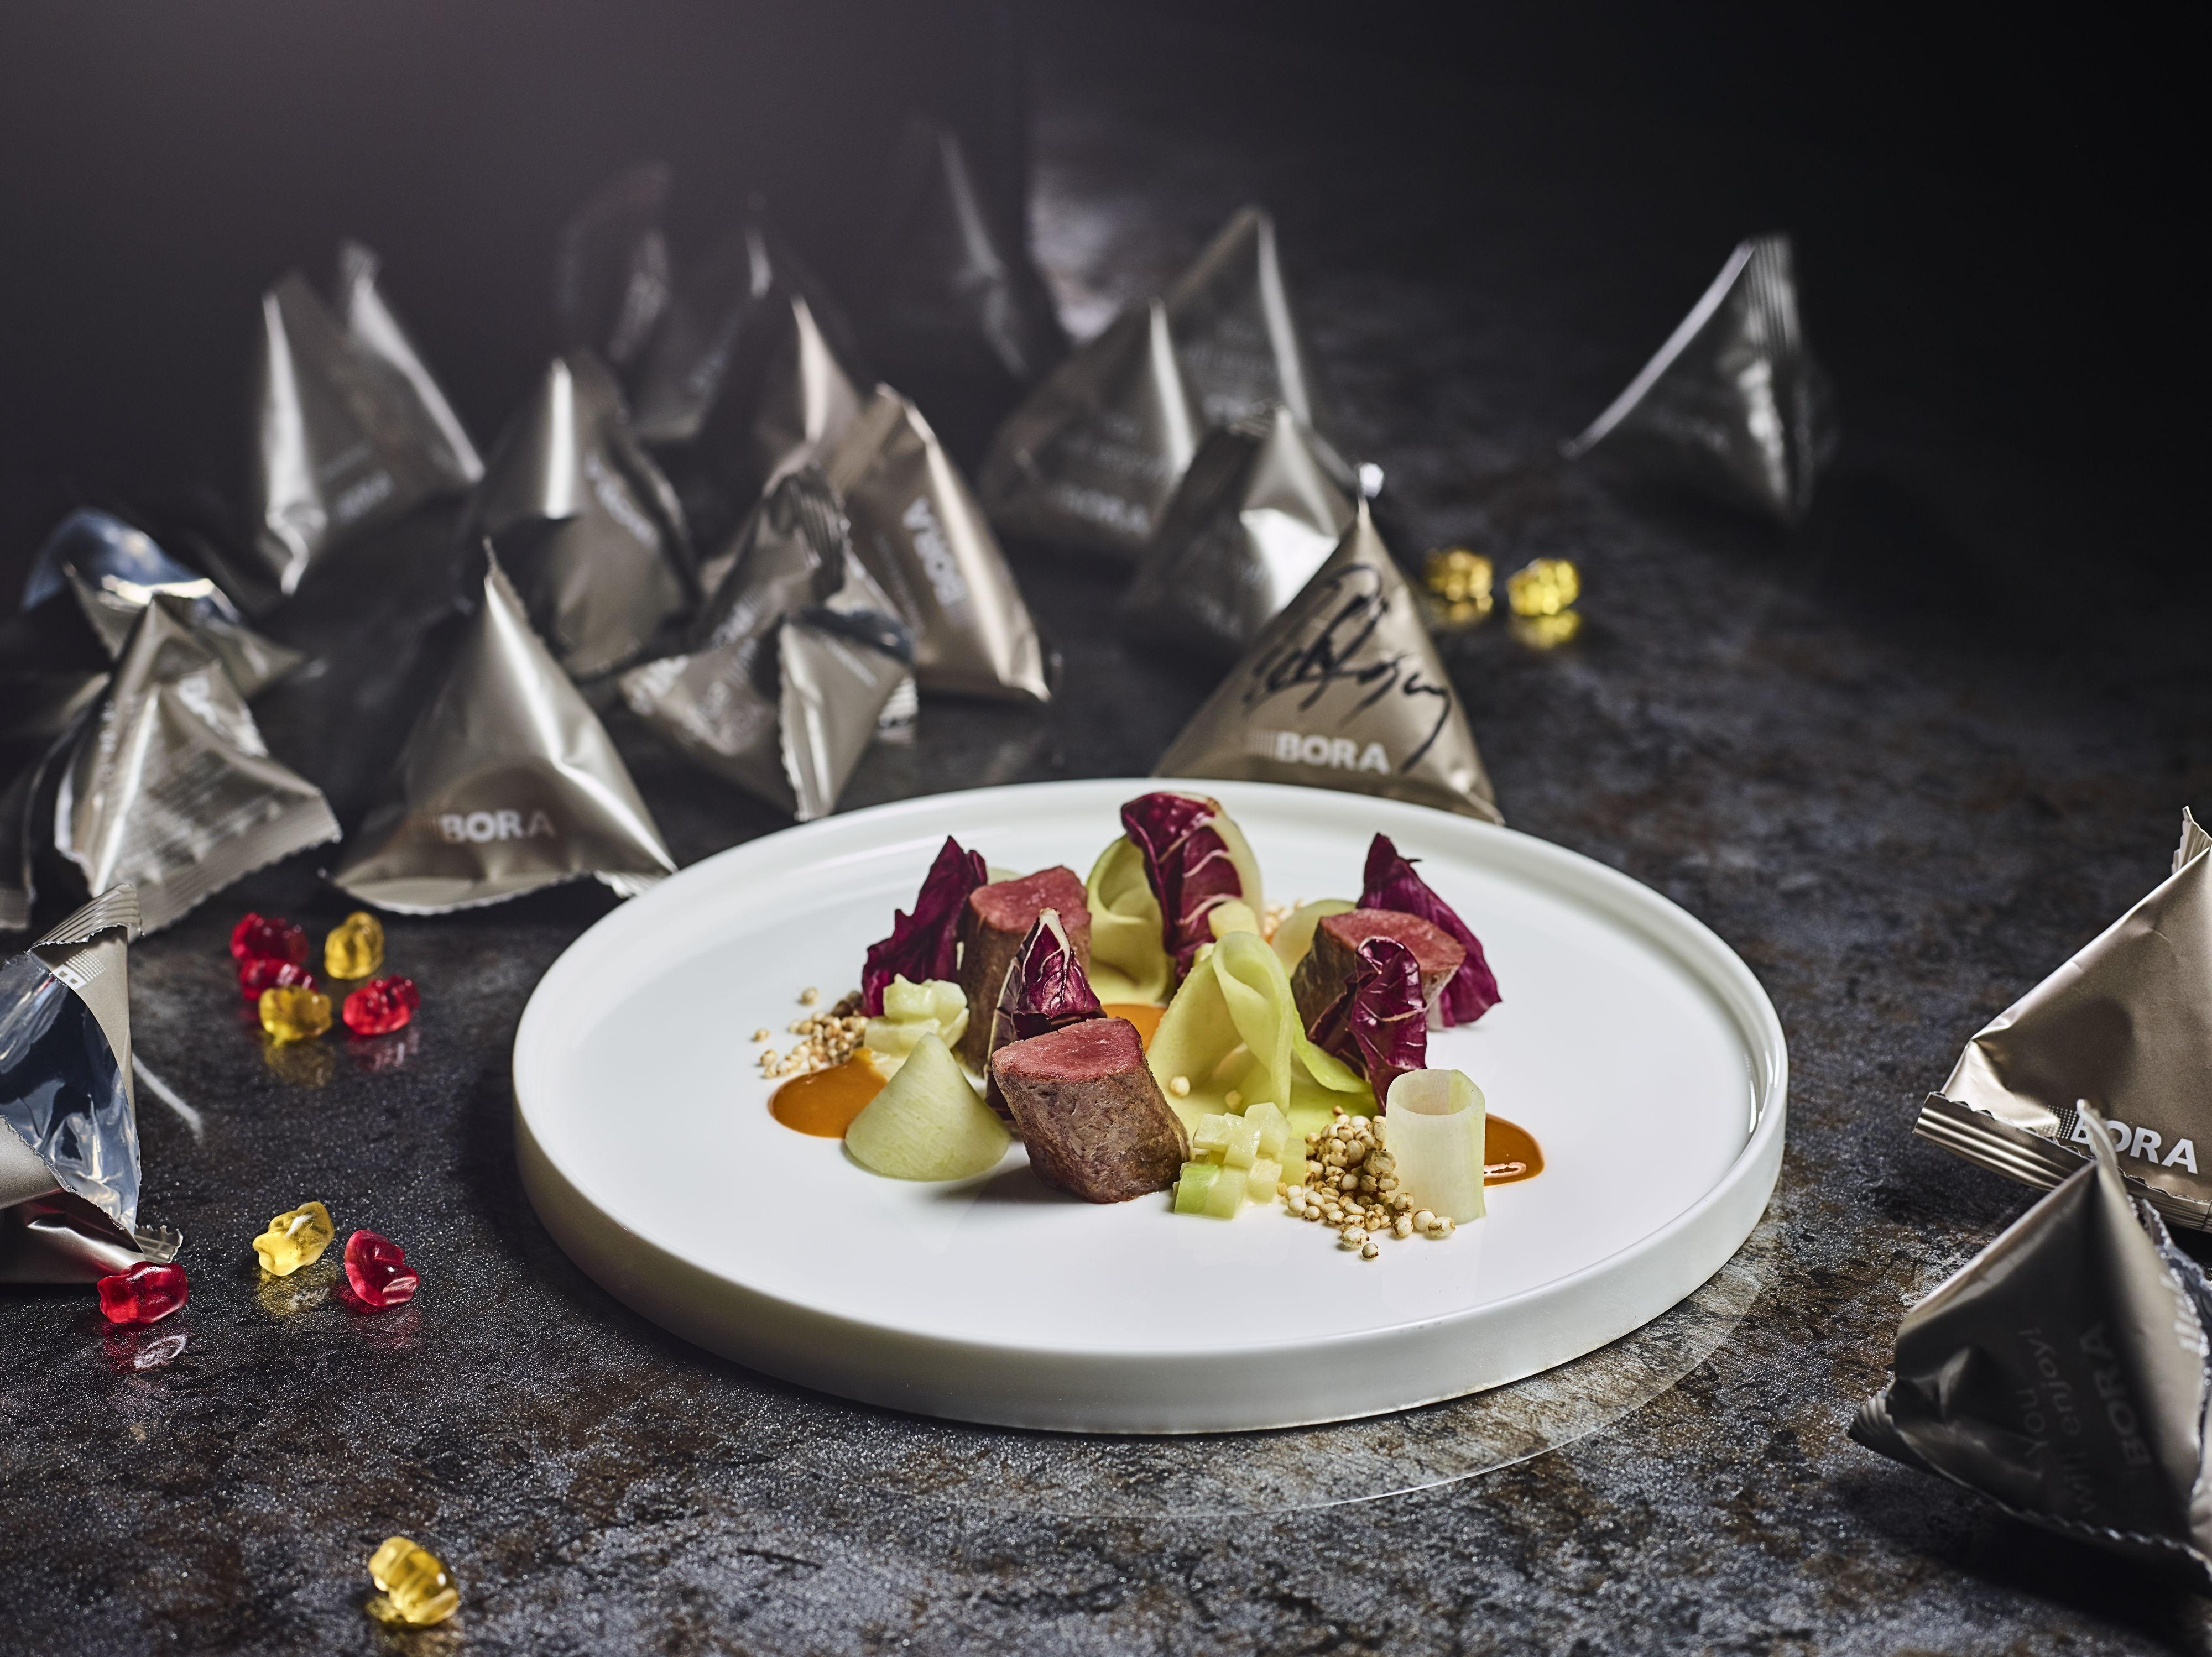 Venison fillet with kohlrabi and sea buckthorn